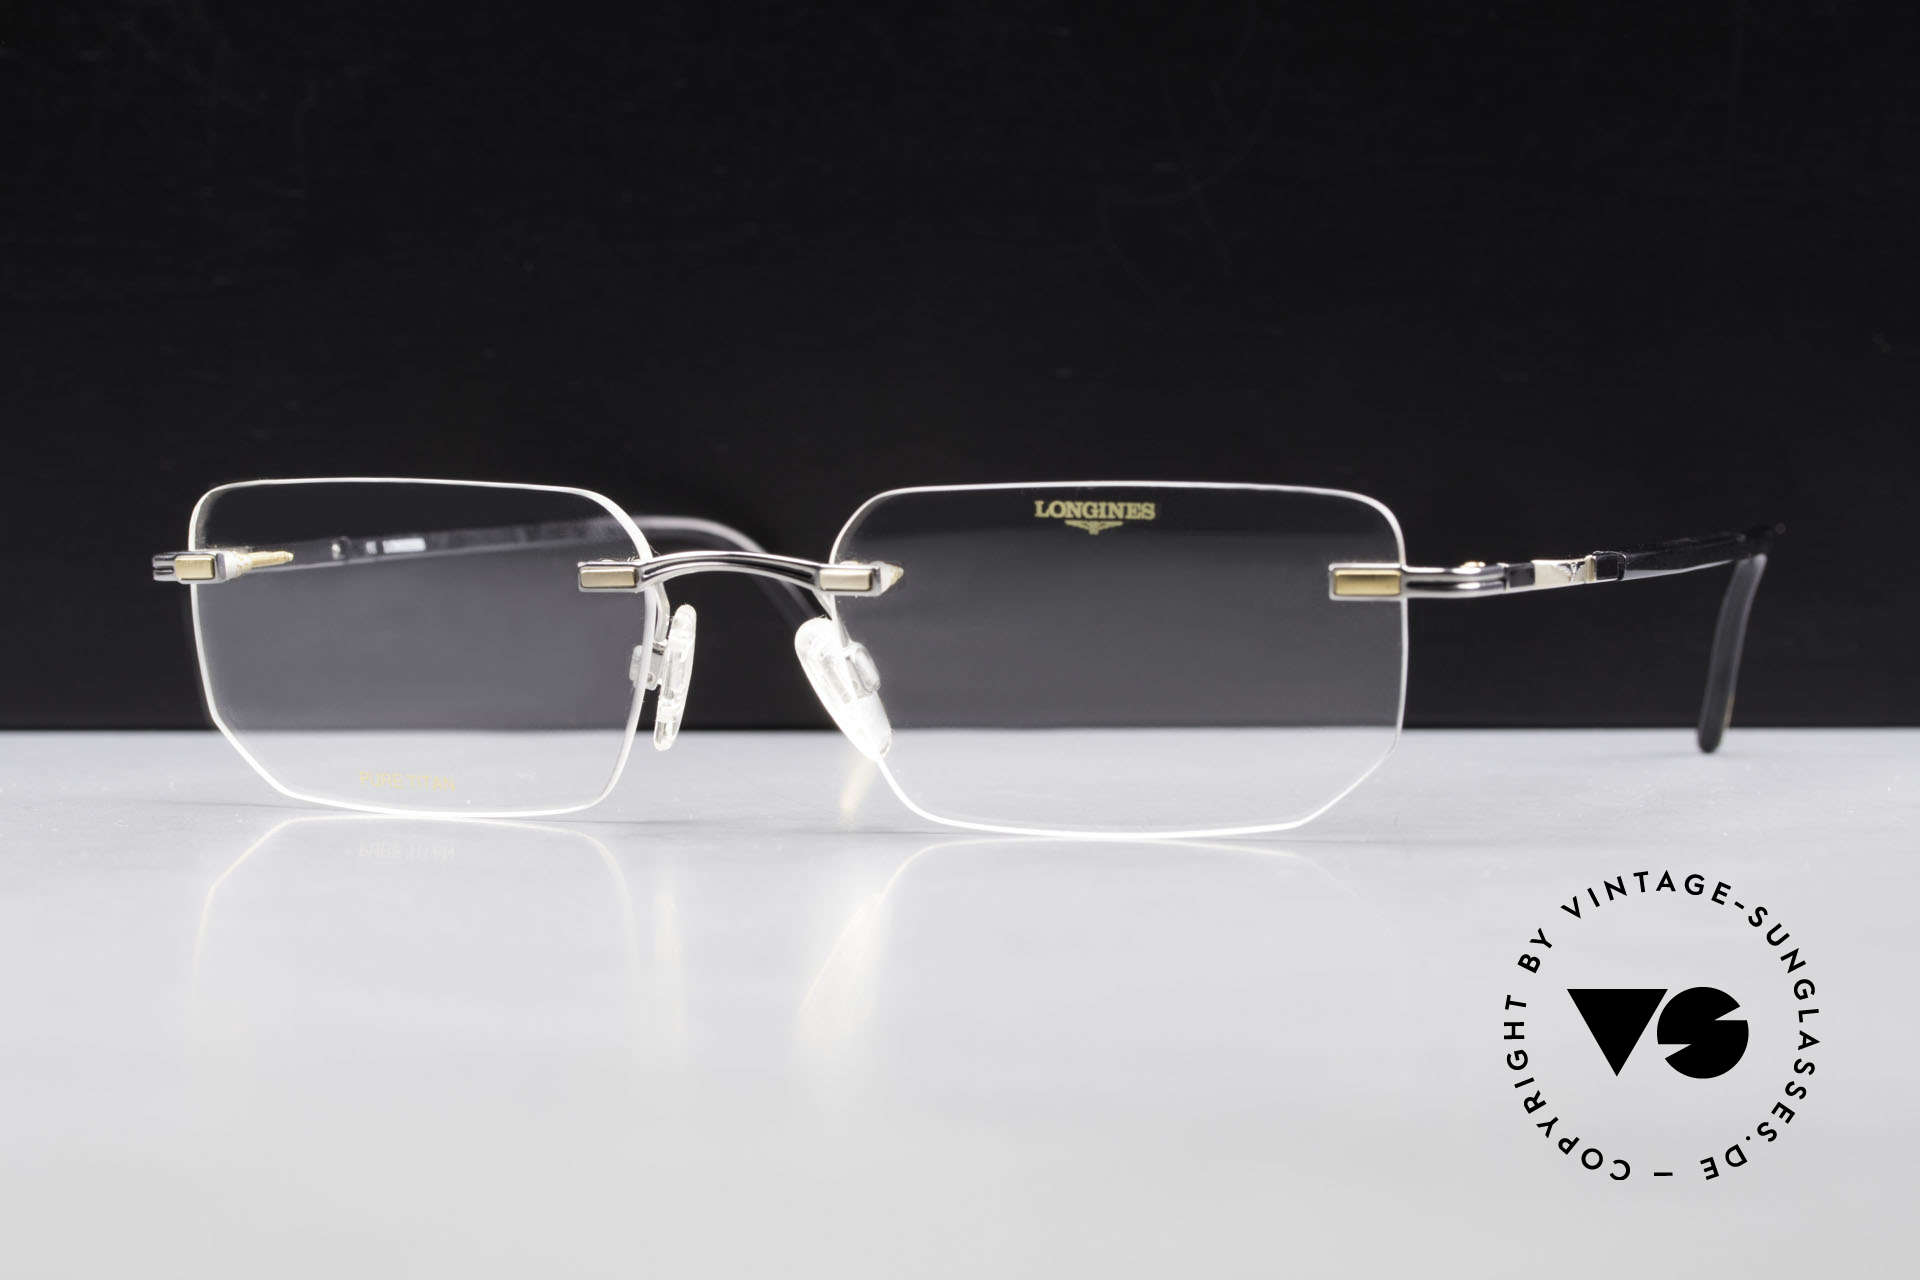 Longines 4238 Rimless 90's Eyeglasses Men, Longines logo, the winged hourglass, on the temples, Made for Men